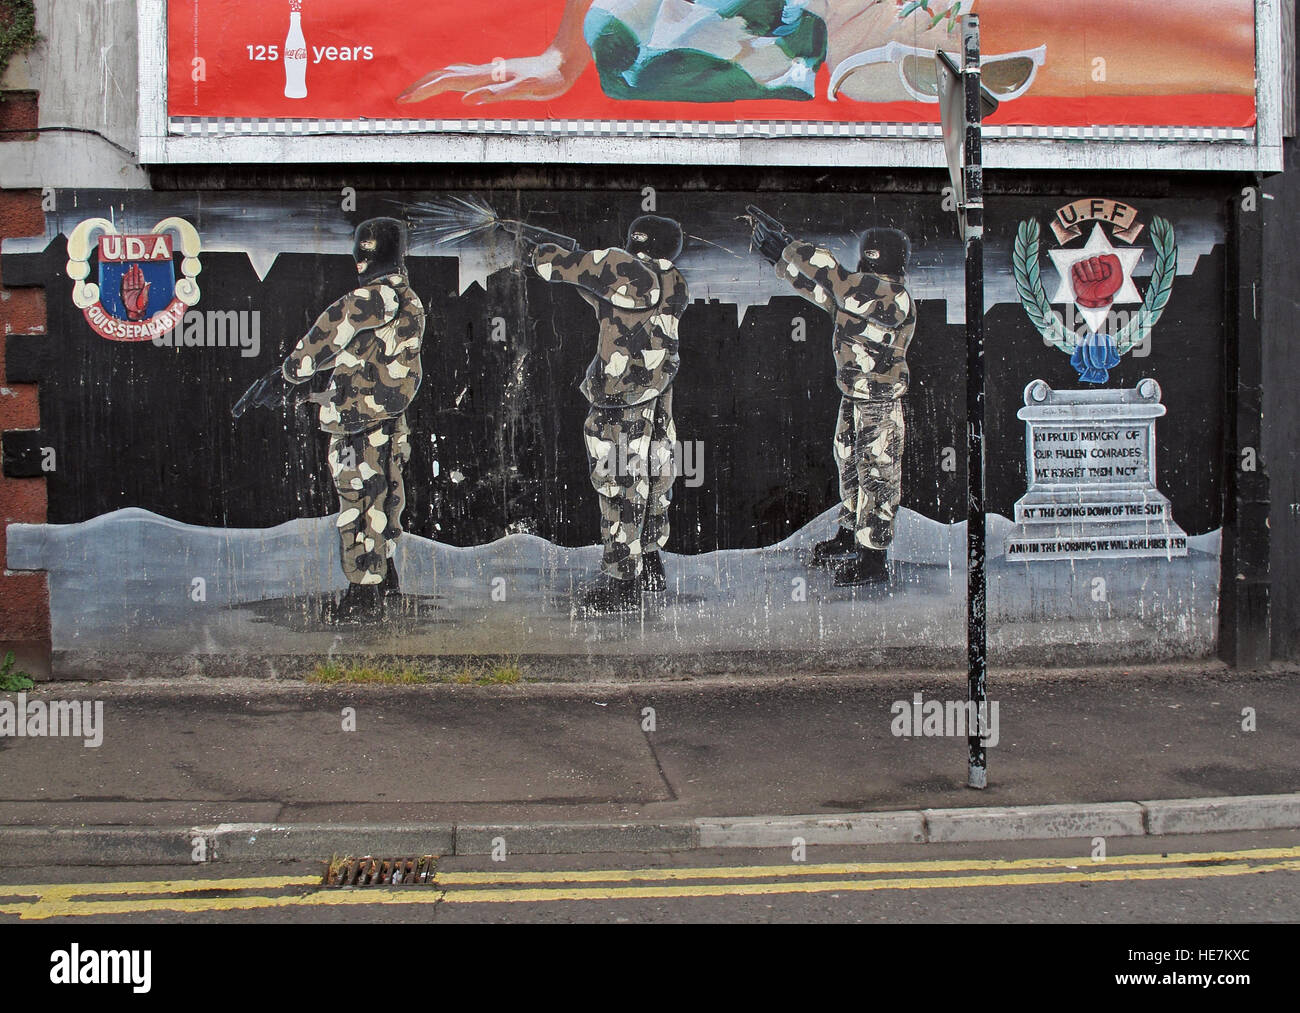 Red hand,Ulster,memorial,UFF,Unionist,mural,off,Shankill,rd,Road,West Belfast,Northern Ireland,UK,Ireland,fighter,fighting,UDA,army,Ulster Defence Association,GoTonySmith,@HotpixUK,Tony,Smith,UK,GB,Great,Britain,United,Kingdom,Irish,British,Ireland,problem,with,problem with,issue with,NI,Northern,Northern Ireland,Belfast,City,Centre,Art,Artists,the,troubles,The Troubles,Good Friday Agreement,Peace,honour,painting,wall,walls,tribute,Unionist,unionism,Protestant,community,Fight,Justice,West,Beal,feirste,martyrs,social,tour,tourism,tourists,urban,six,counties,6,backdrop,county,Antrim,UVF,DUP,British,GB,Empire,Buy Pictures of,Buy Images Of,Images of,Stock Images,Tony Smith,United Kingdom,Great Britain,British Isles,Belfast protestant community,Peoples army